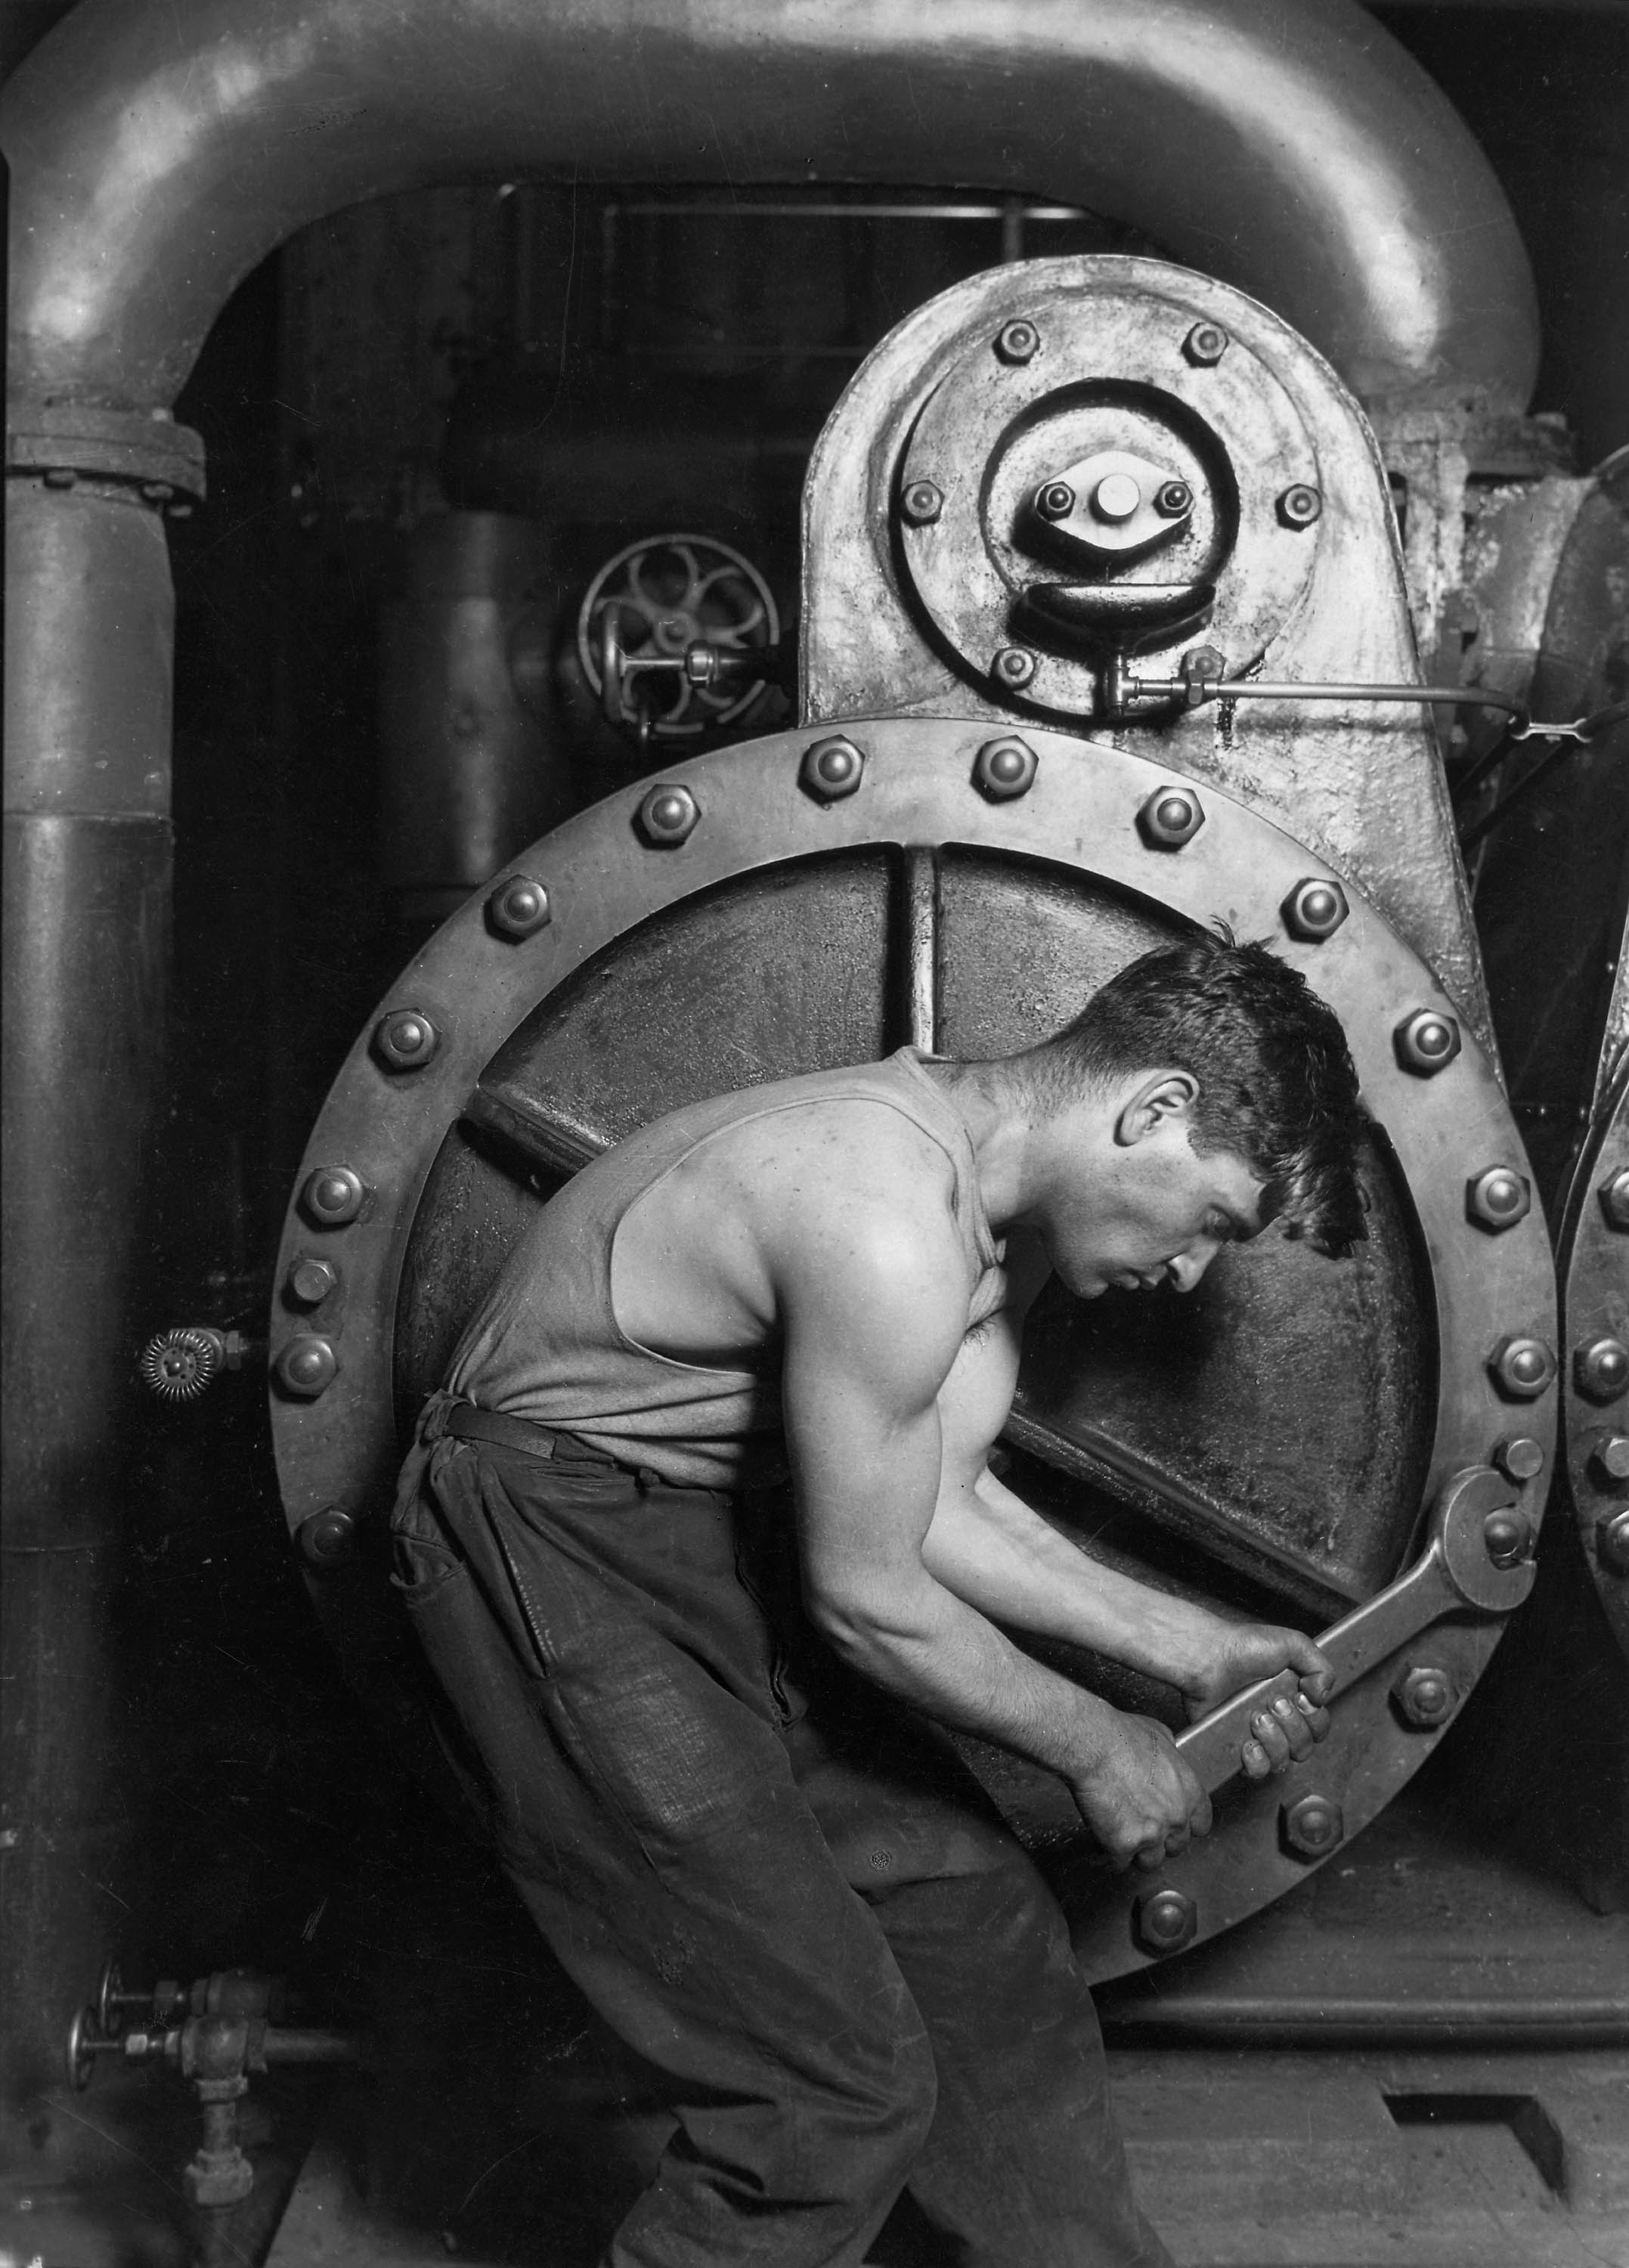 File:Lewis Hine Power house mechanic working on steam pump.jpg ...